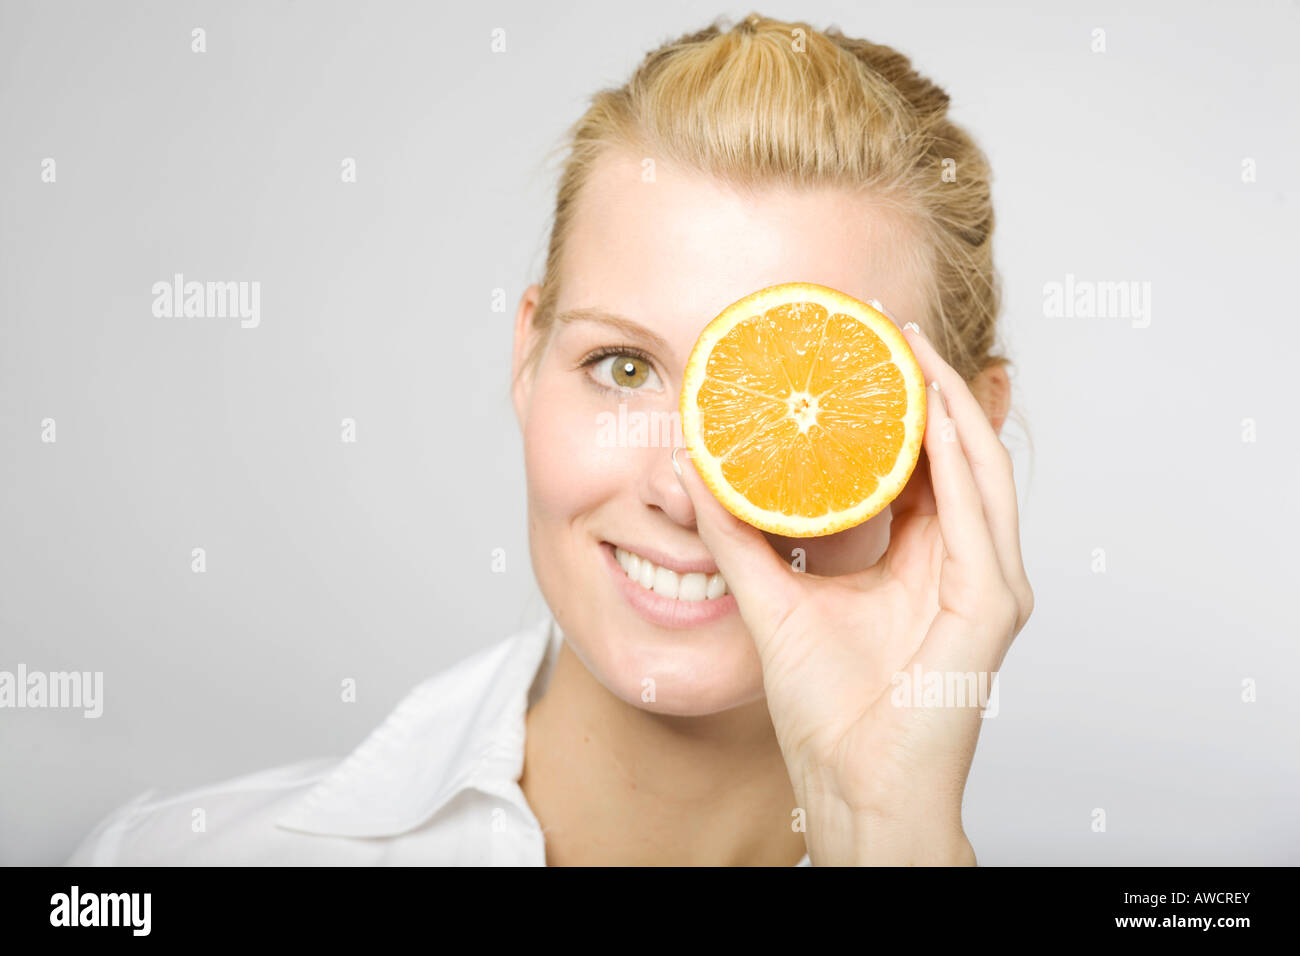 Blonde woman laughingly holding sliced orange in front of one eye - Stock Image